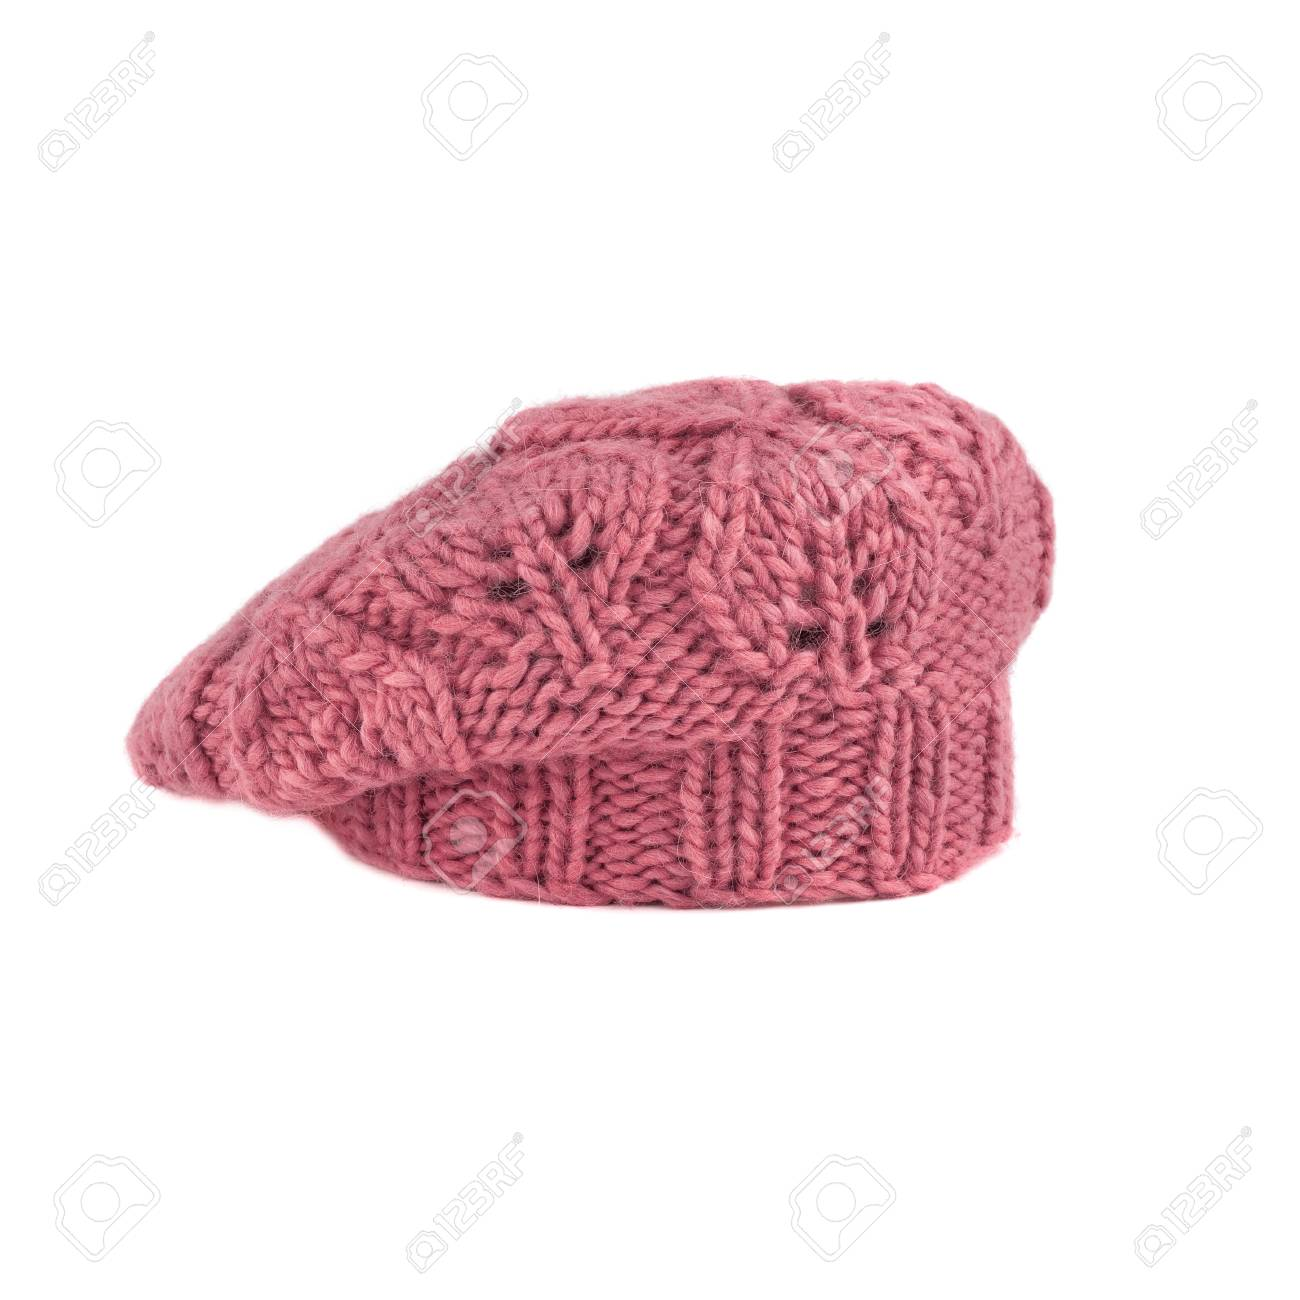 a3193aabae2 pink french beret on white background Stock Photo - 79417305